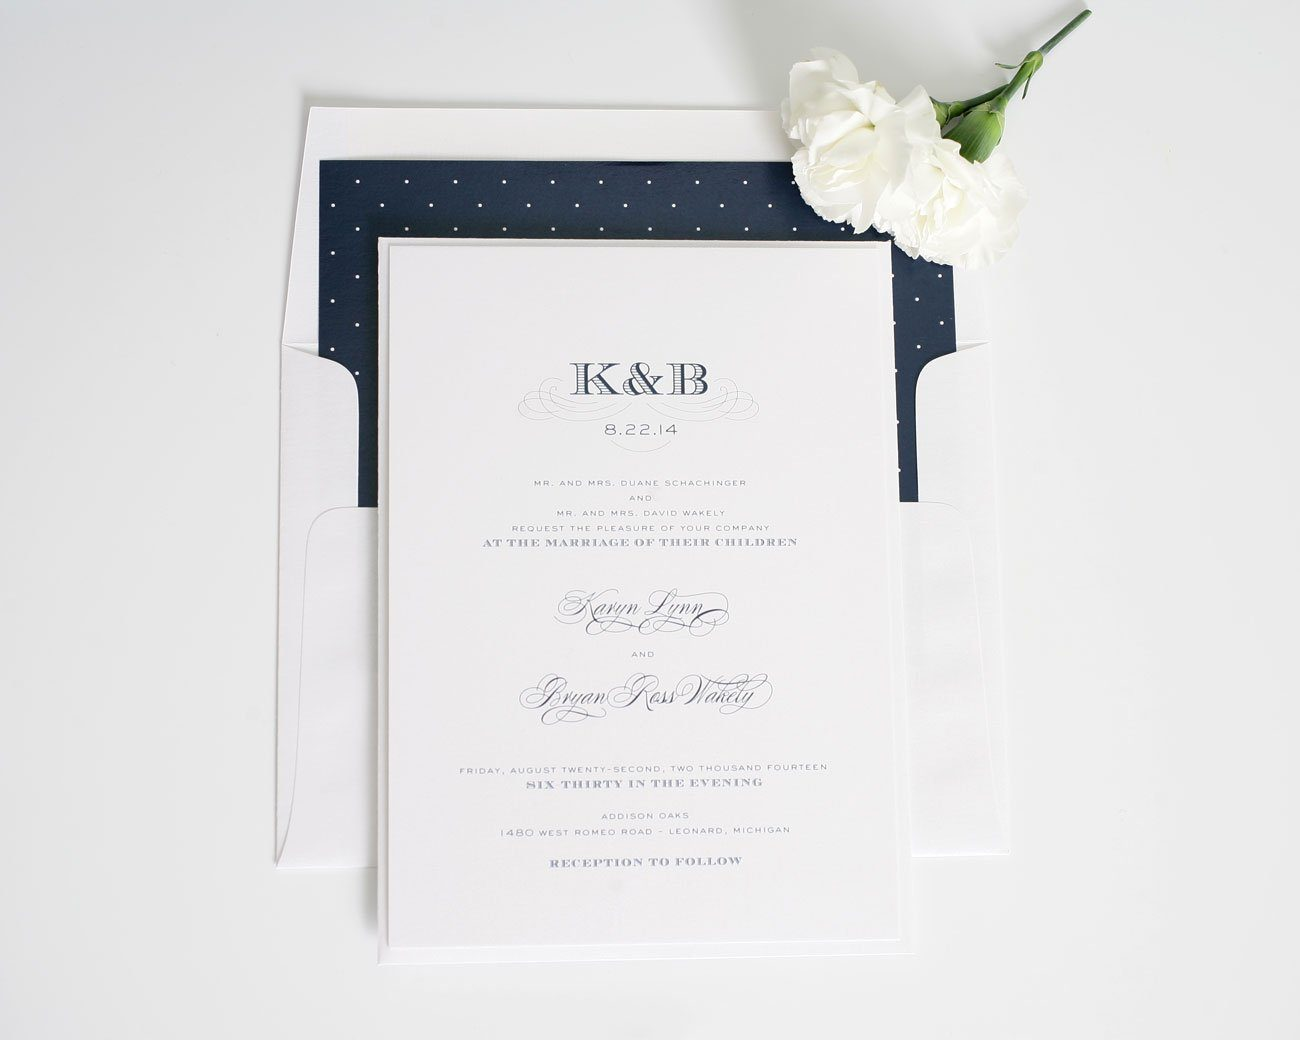 Polka Dot wedding invitations in navy